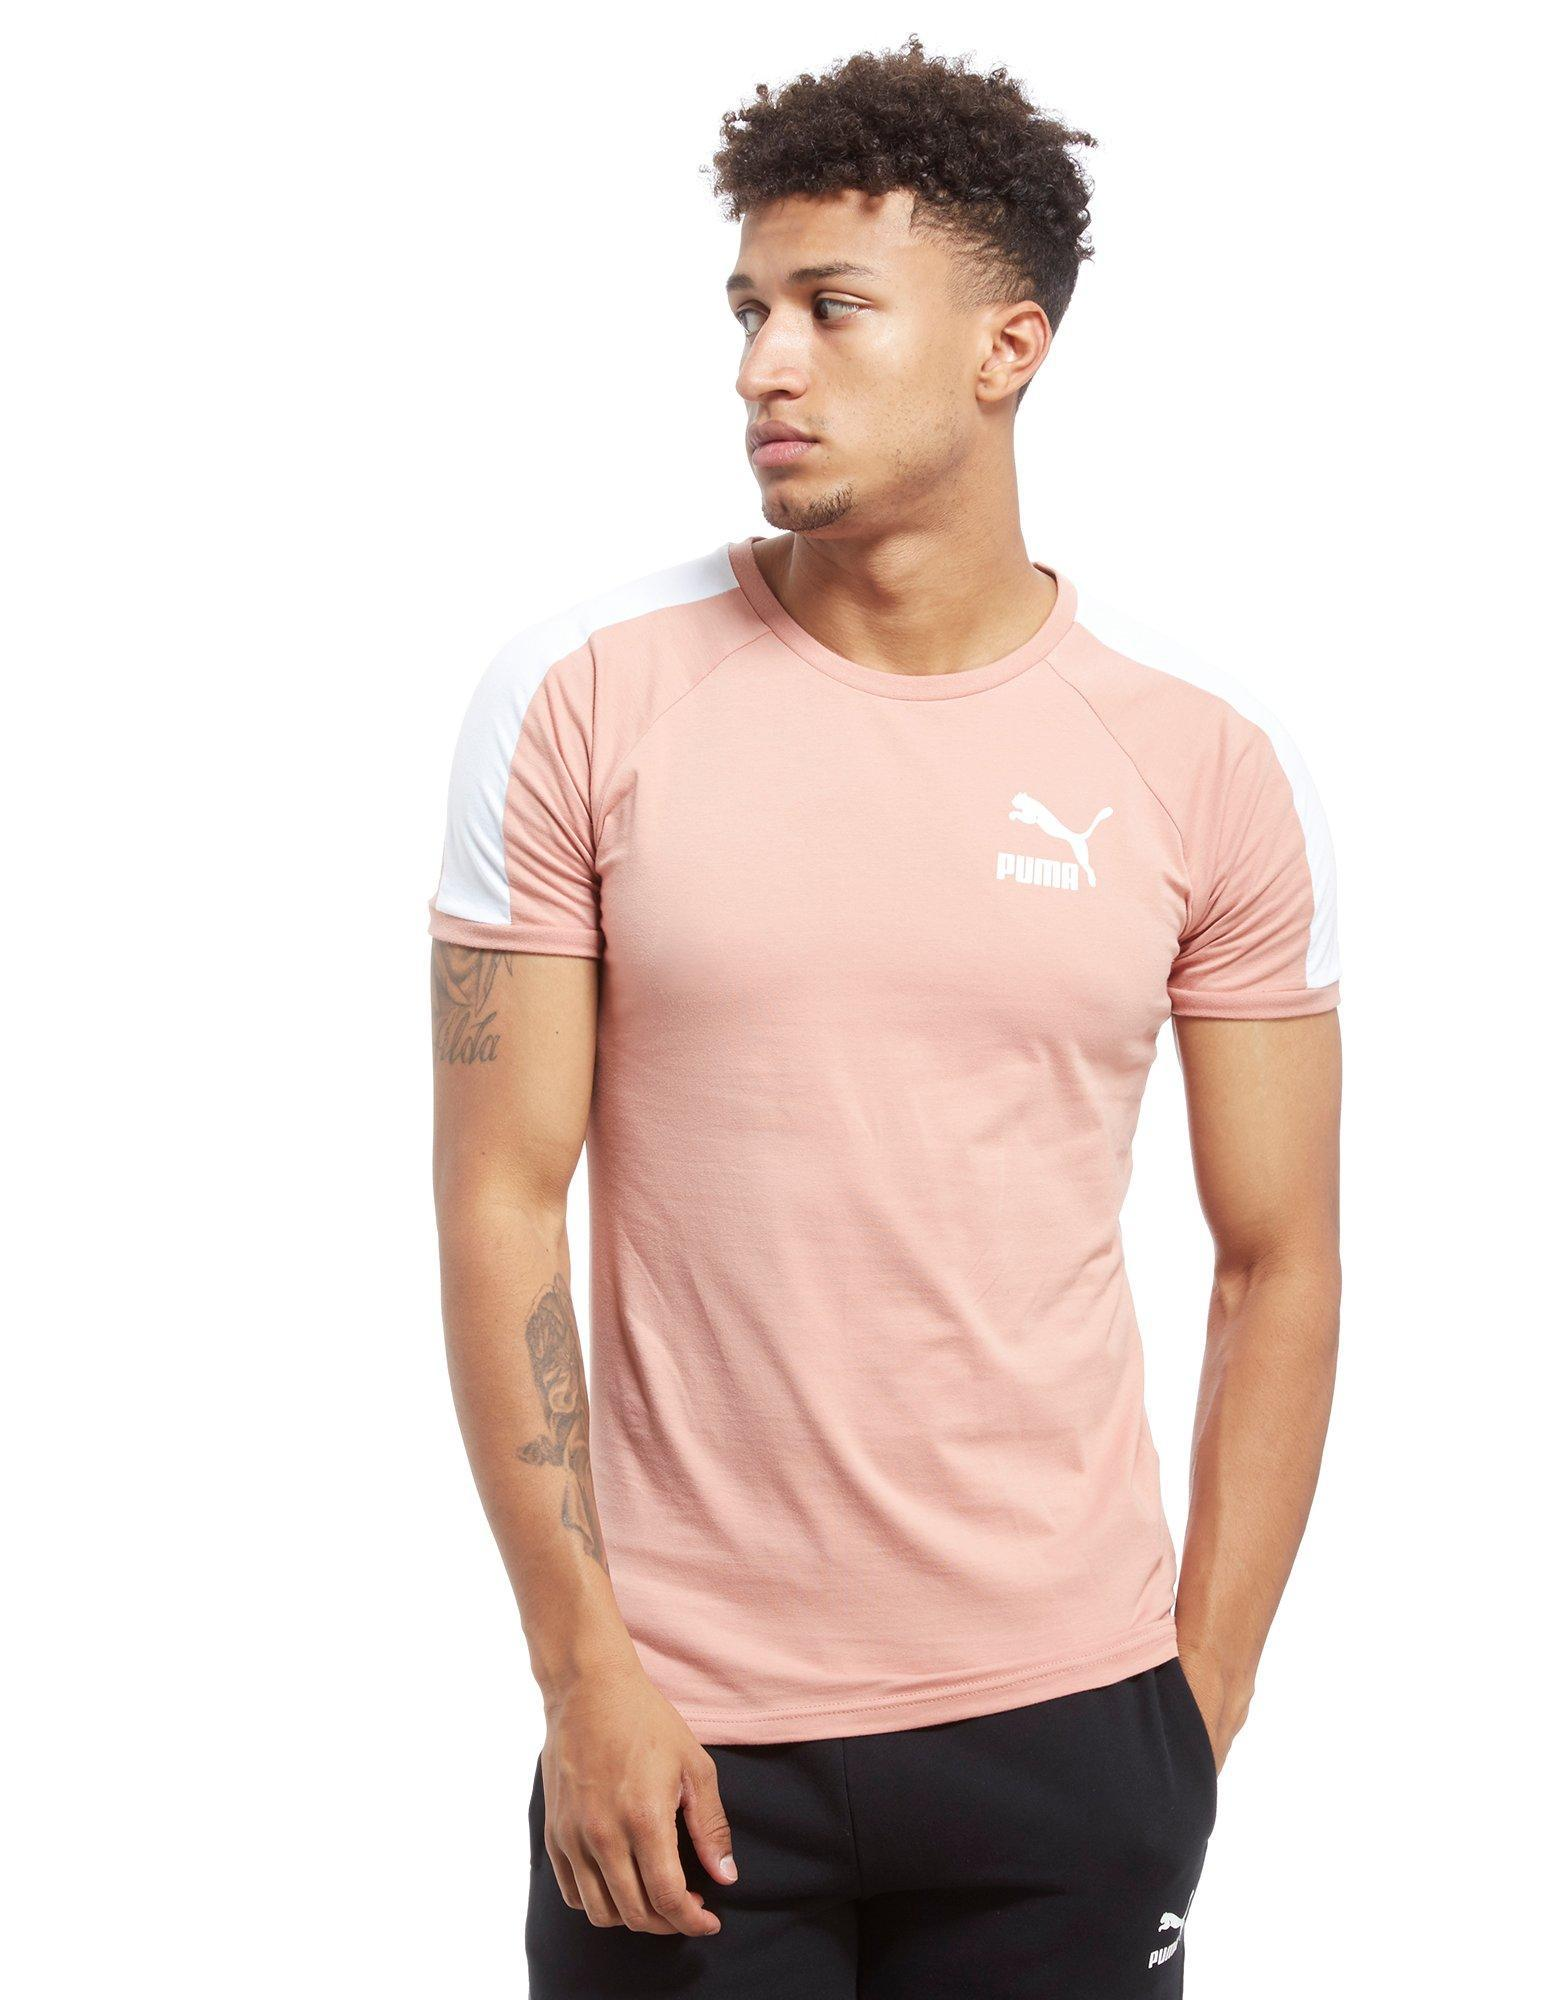 064974355 PUMA T7 T-shirt in Pink for Men - Lyst